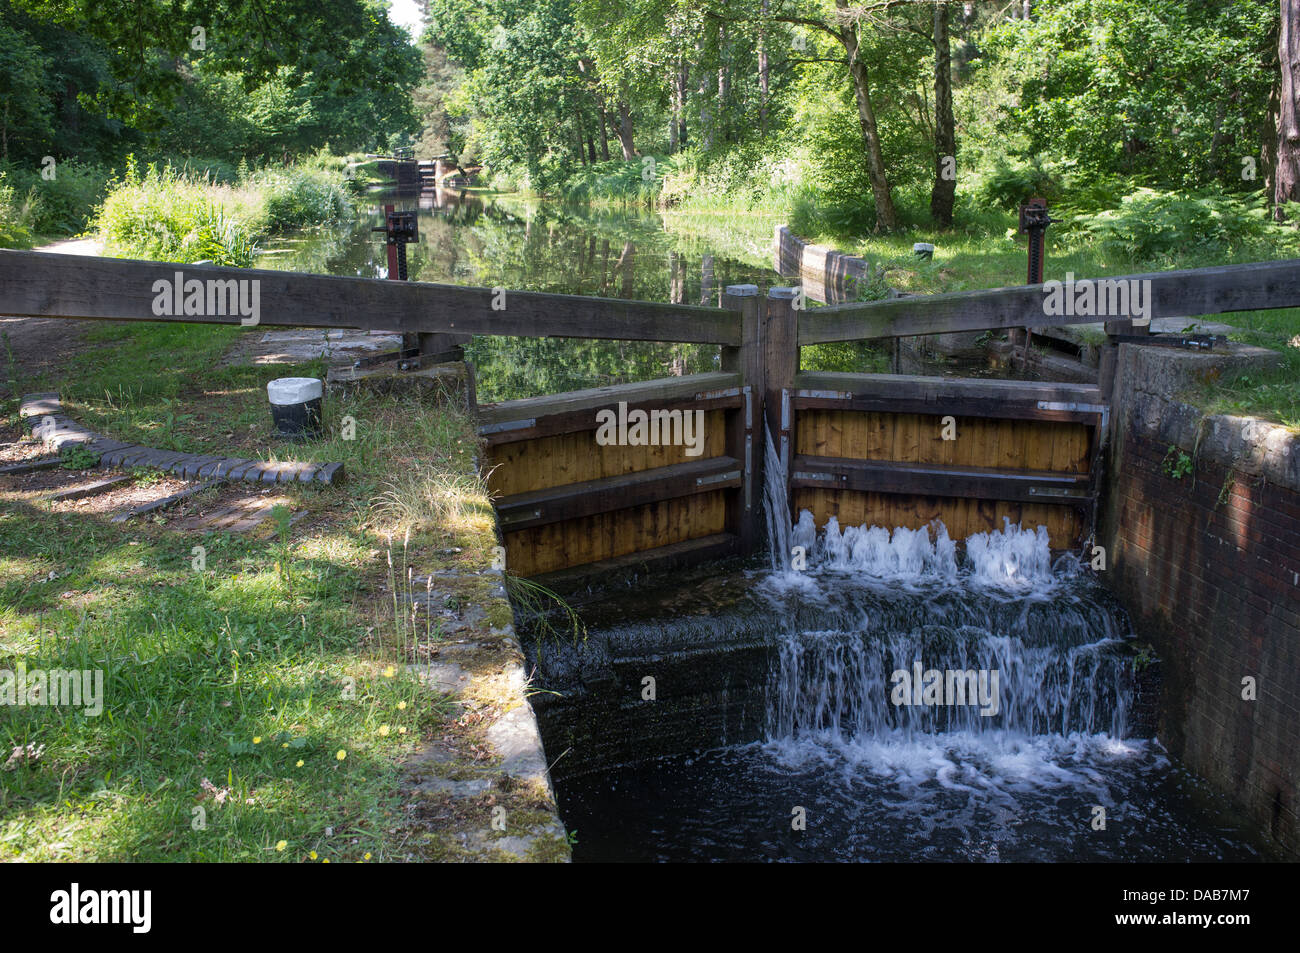 Lock on The Basingstoke Canal with Leaking Lock Gates -5 - Stock Image